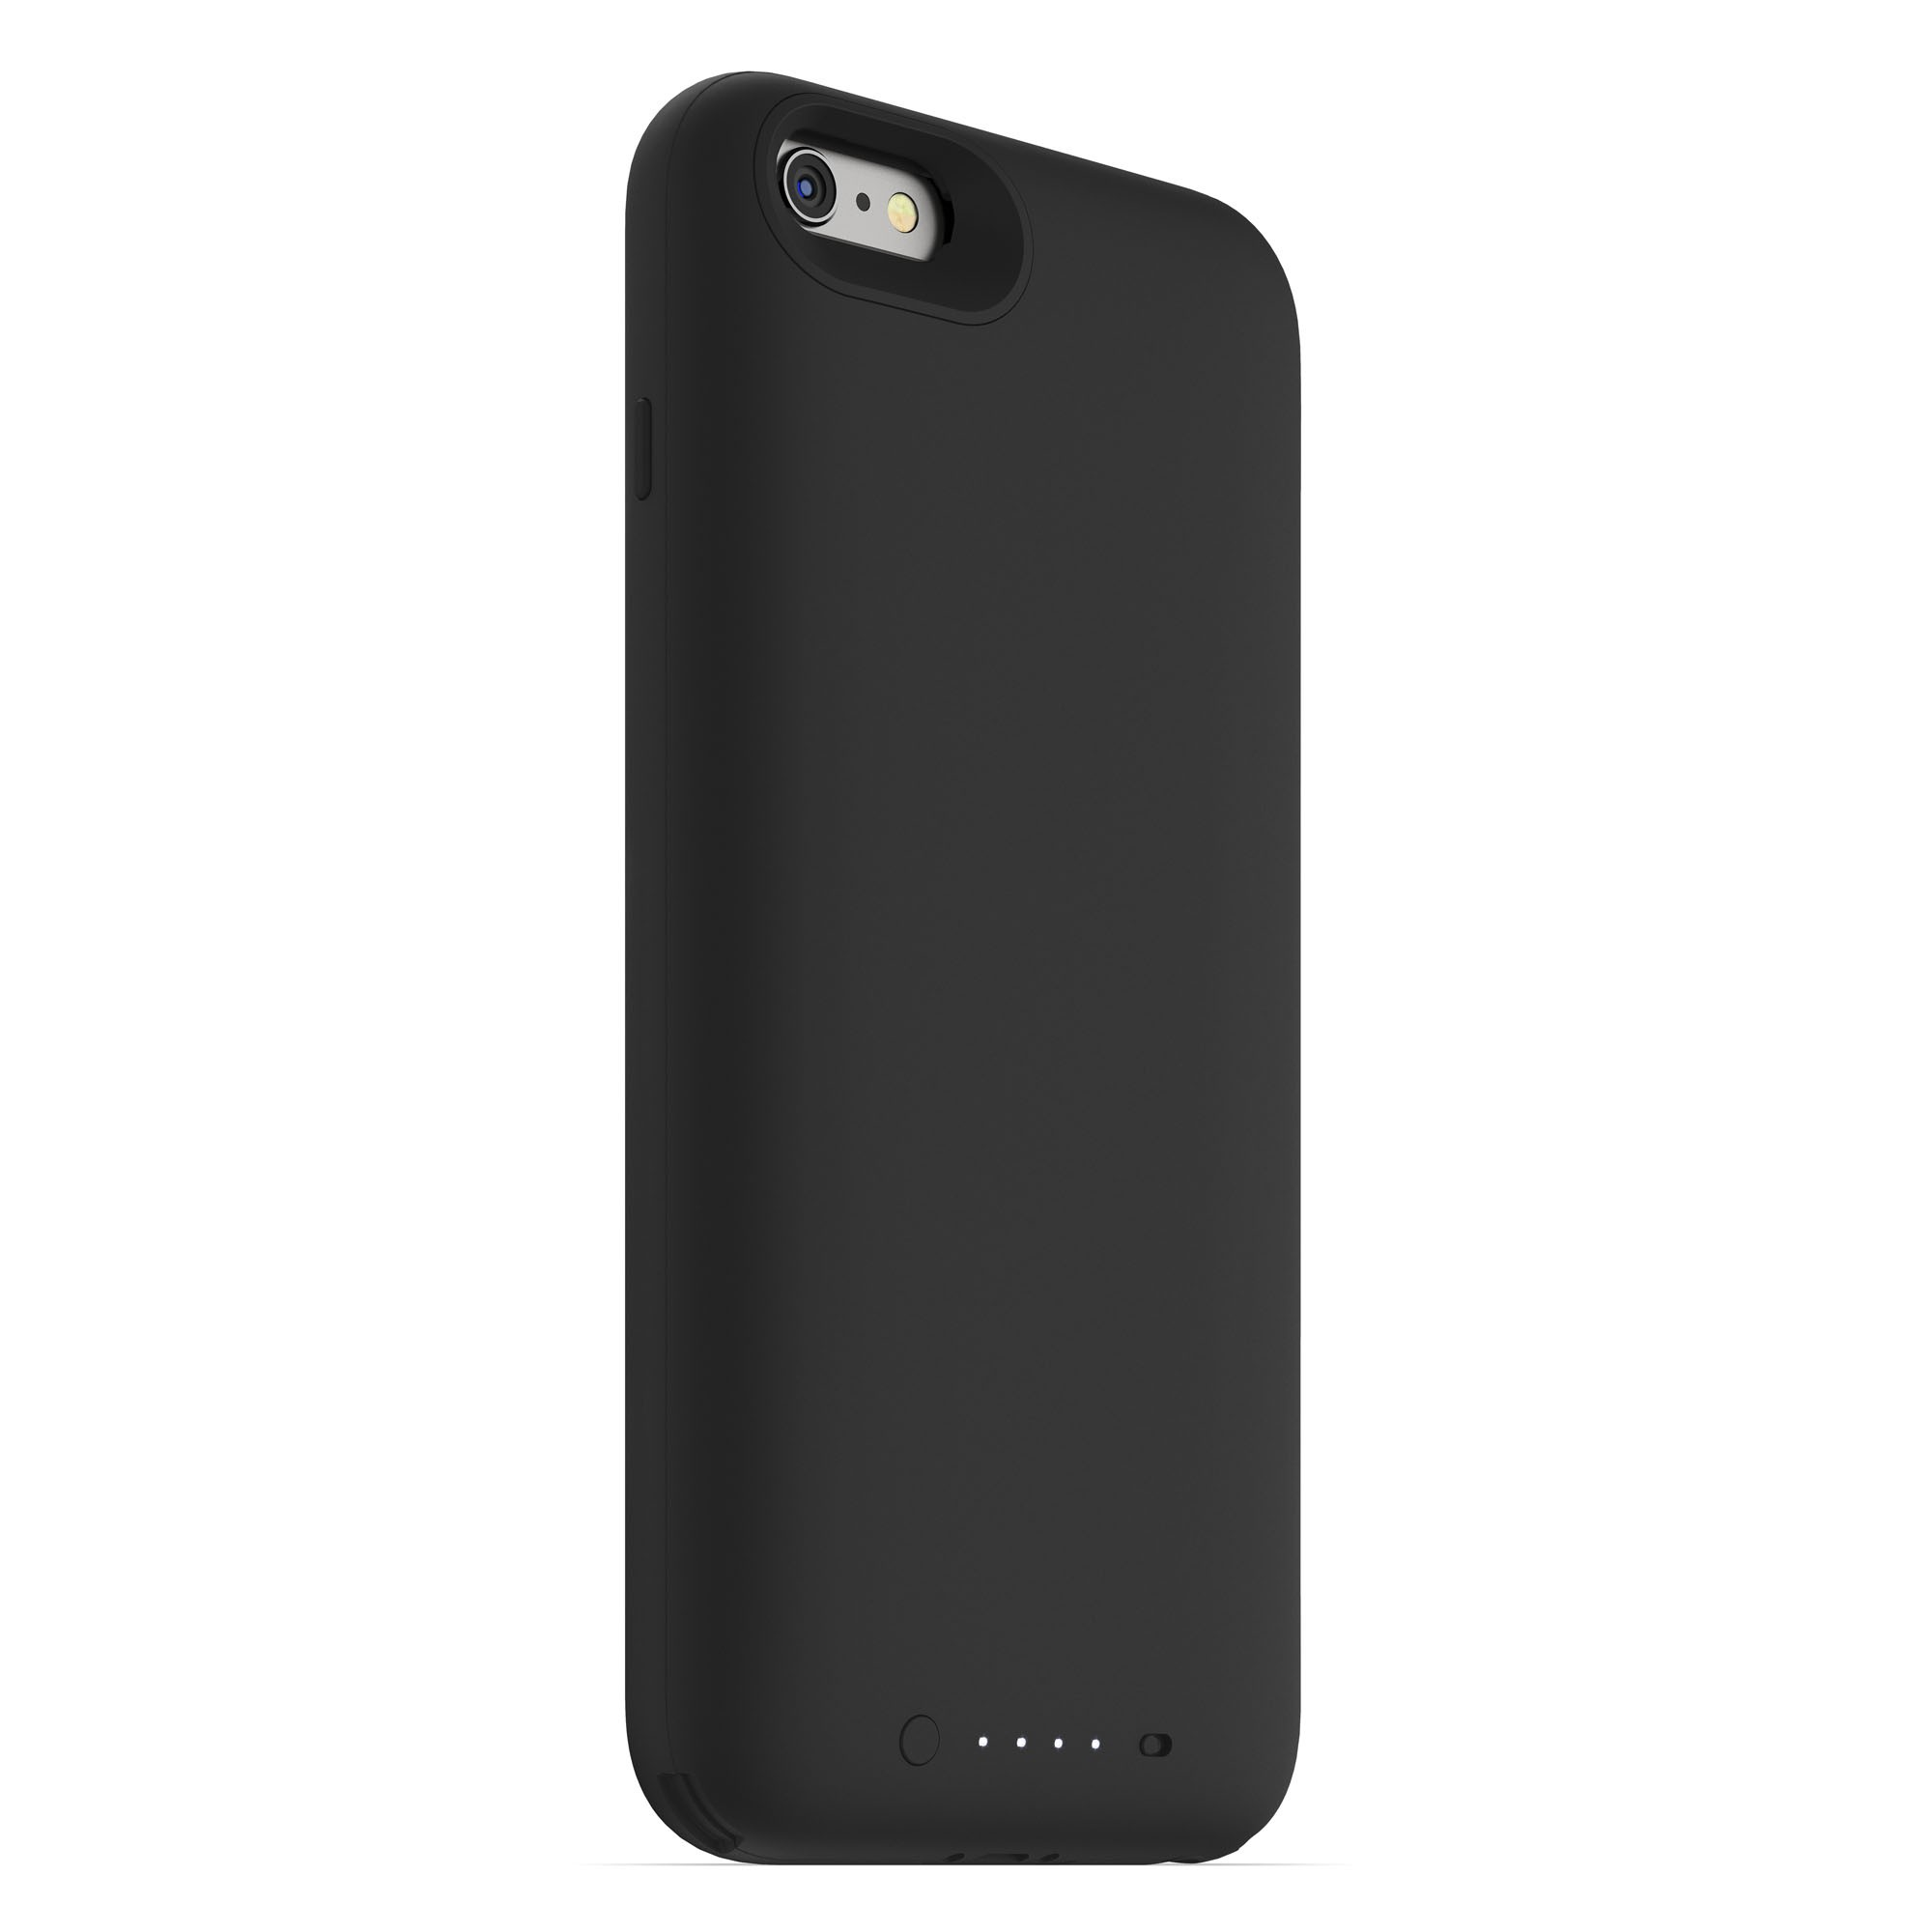 mophie juice pack wireless and charging base iphone 6s plus 6 plusmophie juice pack wireless and charging base iphone 6s plus 6 plus 2,420mah, black walmart com